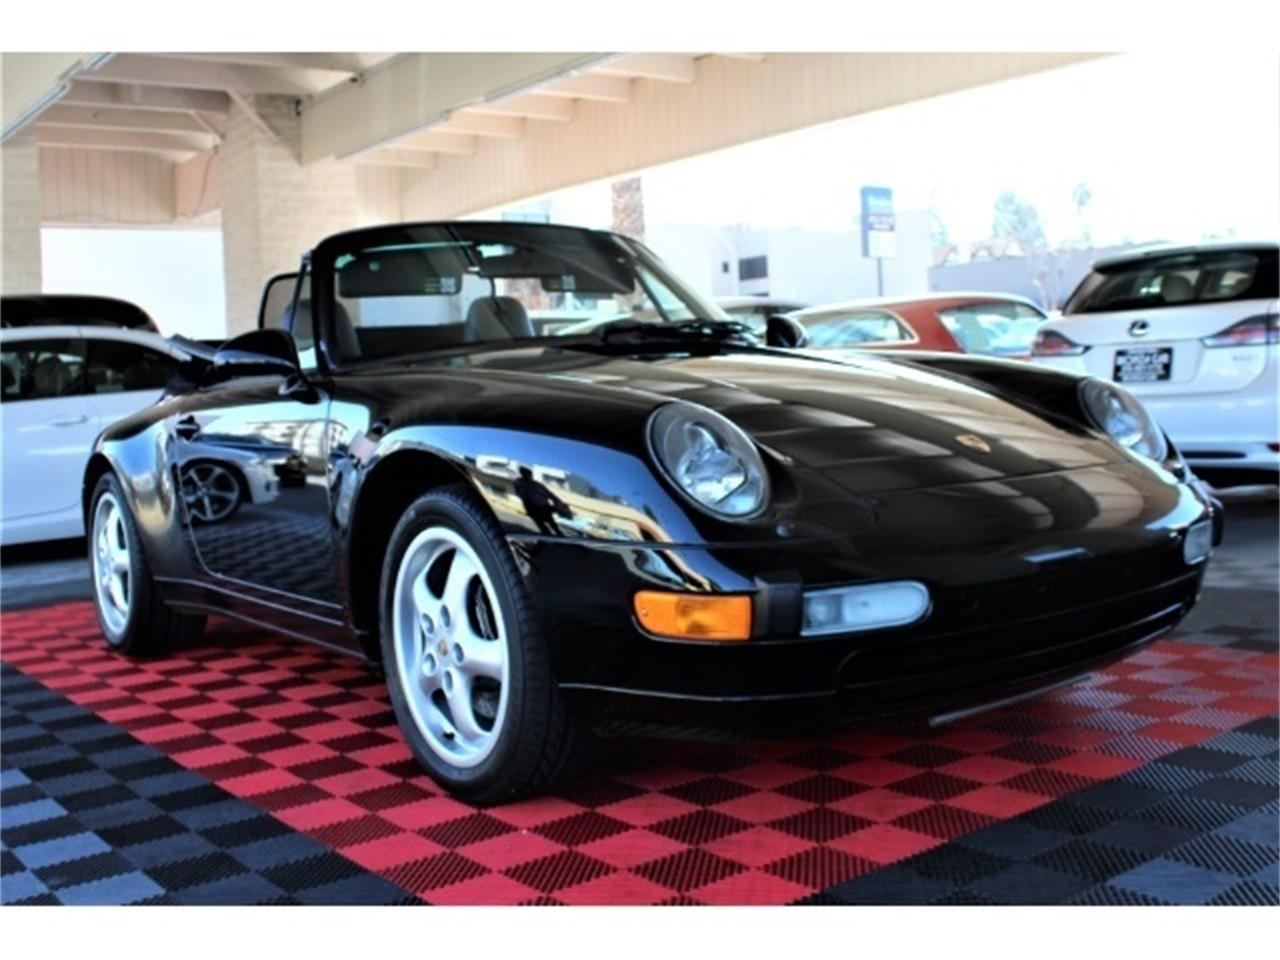 Large Picture of '98 Porsche 911 Carrera - $62,995.00 Offered by Monza Car - PMWM